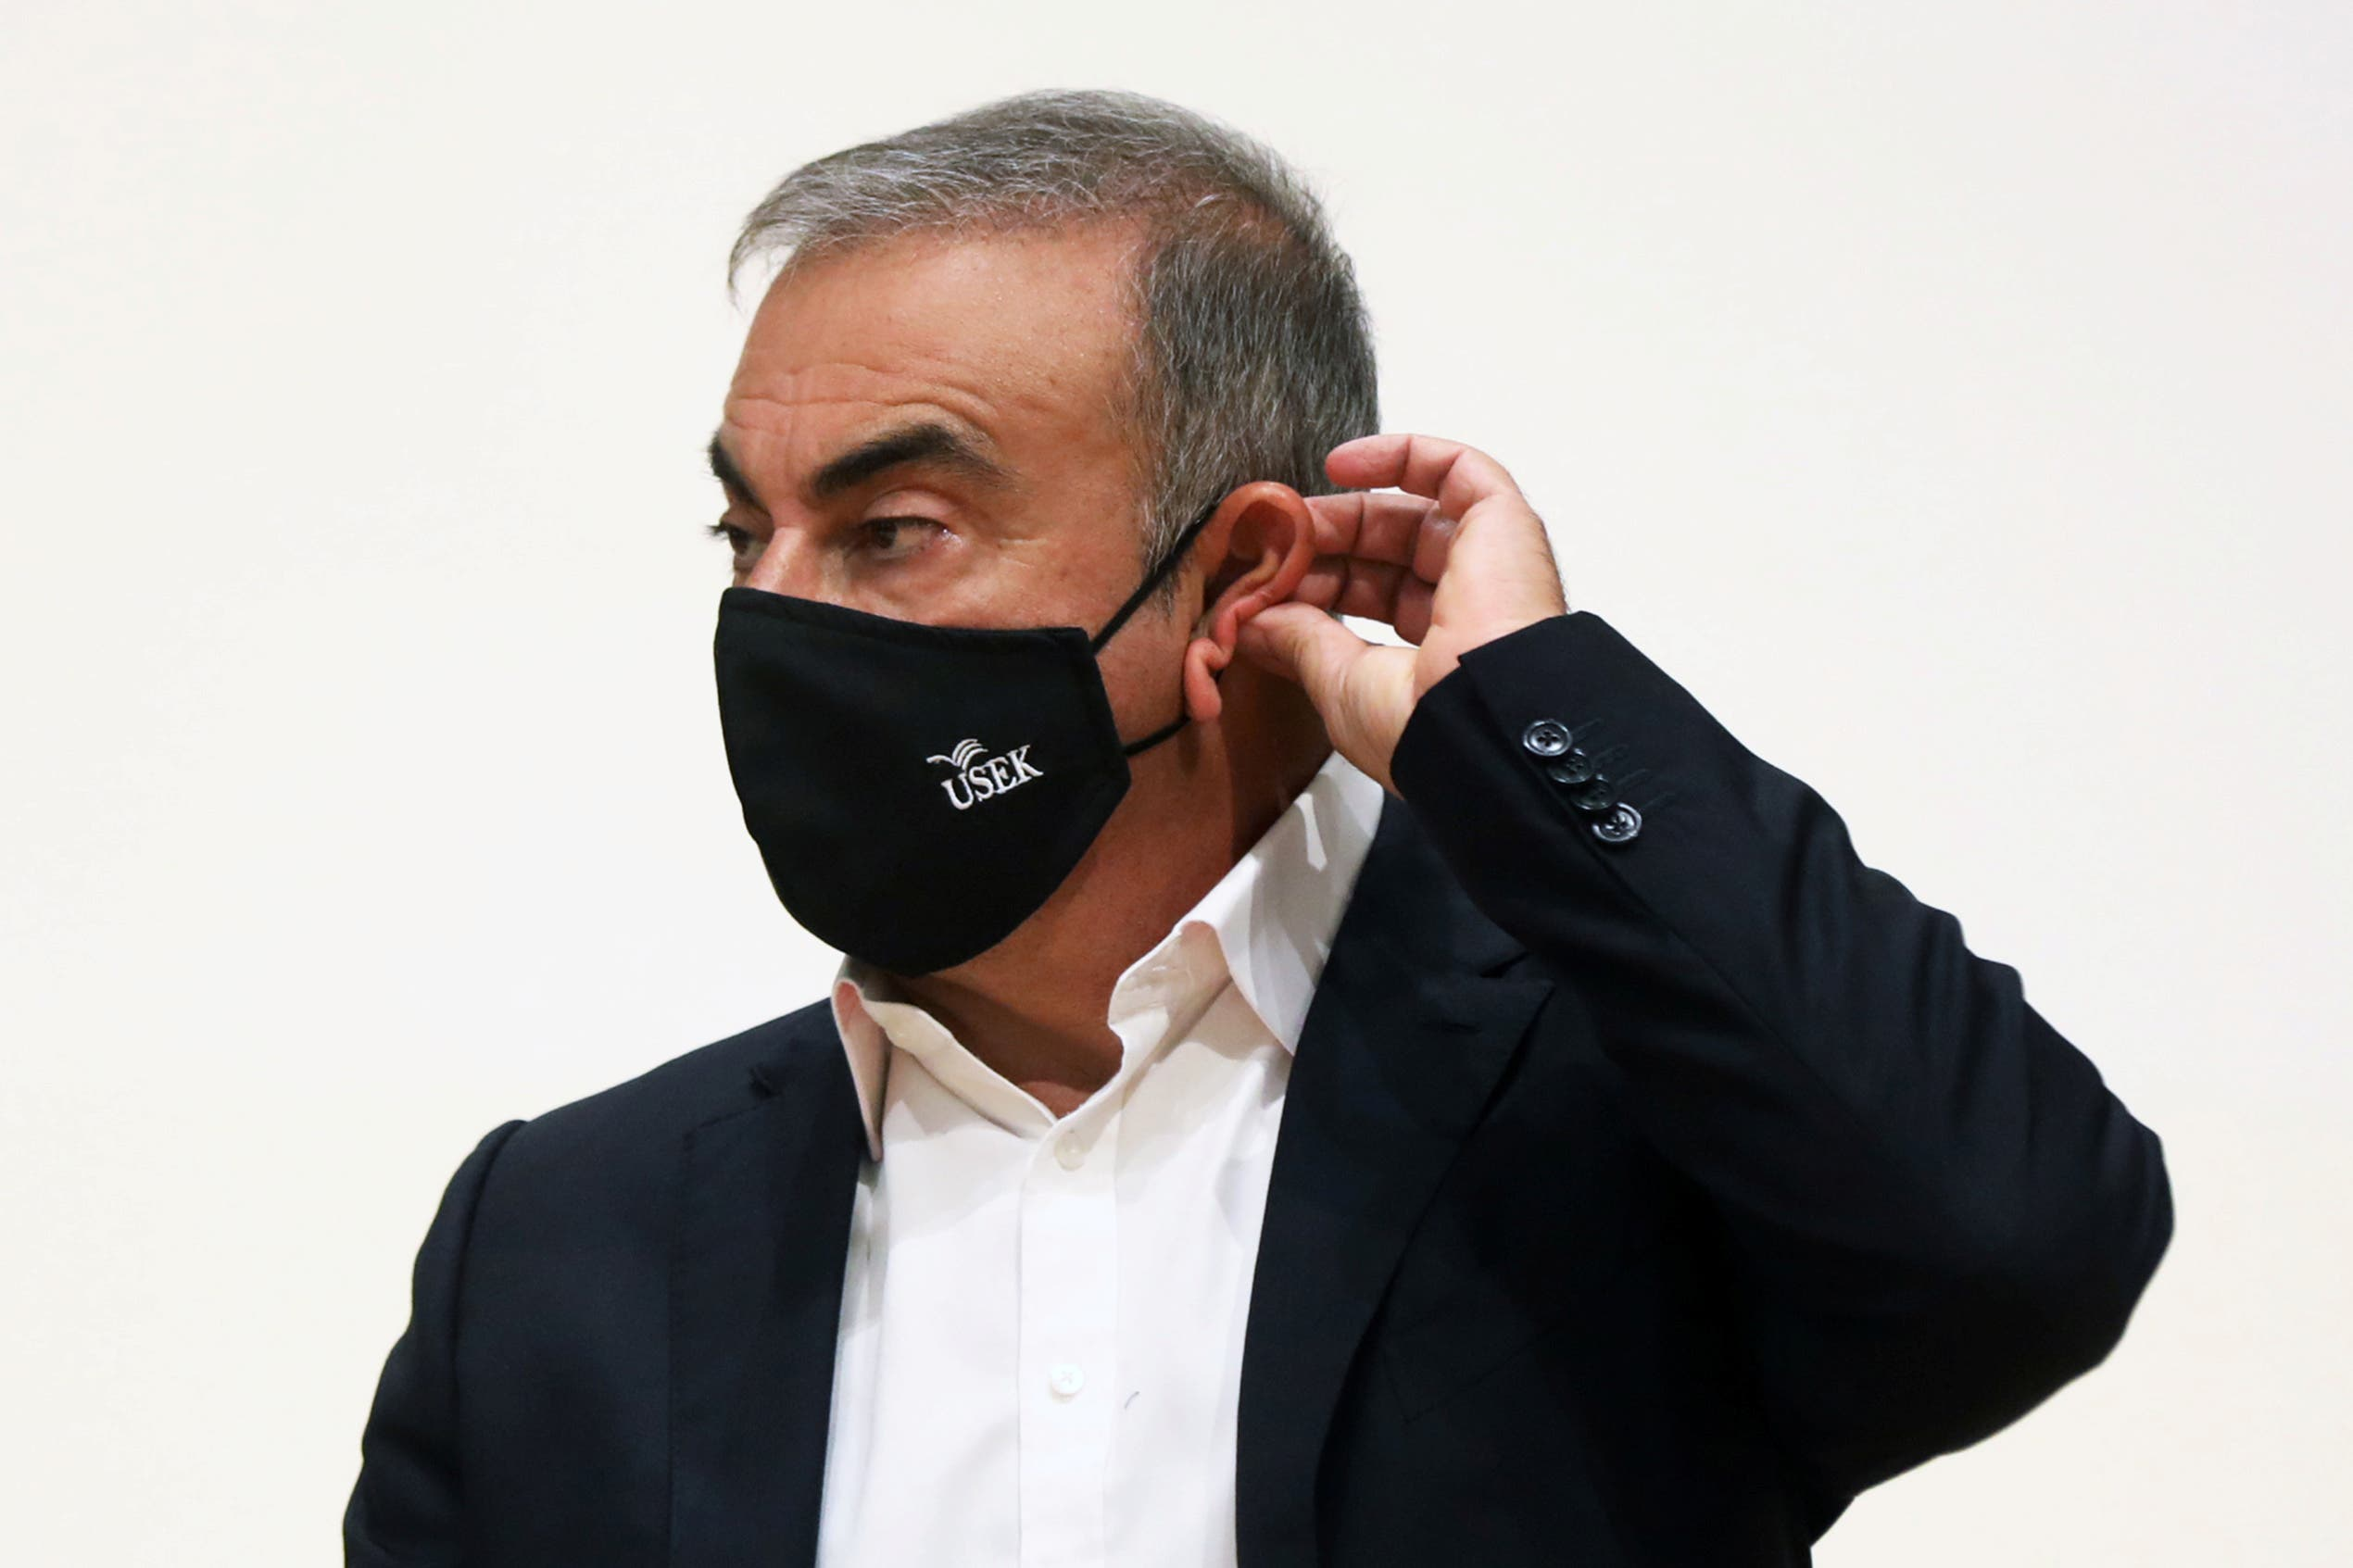 Carlos Ghosn, the former Nissan and Renault chief executive, adjusts his protective face mask during a news conference at the Holy Spirit University of Kaslik, in Jounieh, Lebanon September 29, 2020. (Reuters)